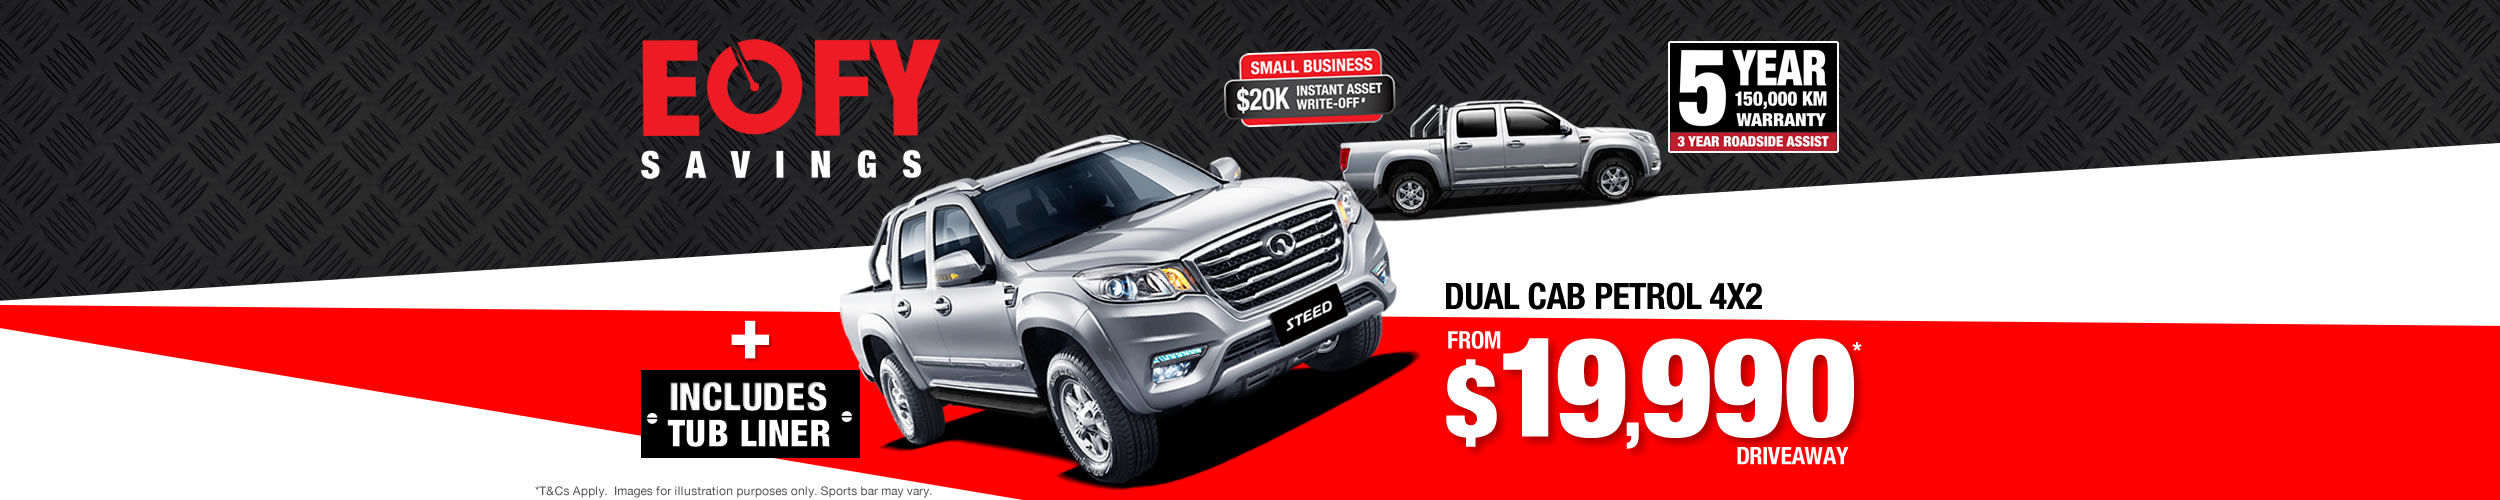 Steed-Dual-Cab-Q2-2019-dt-2